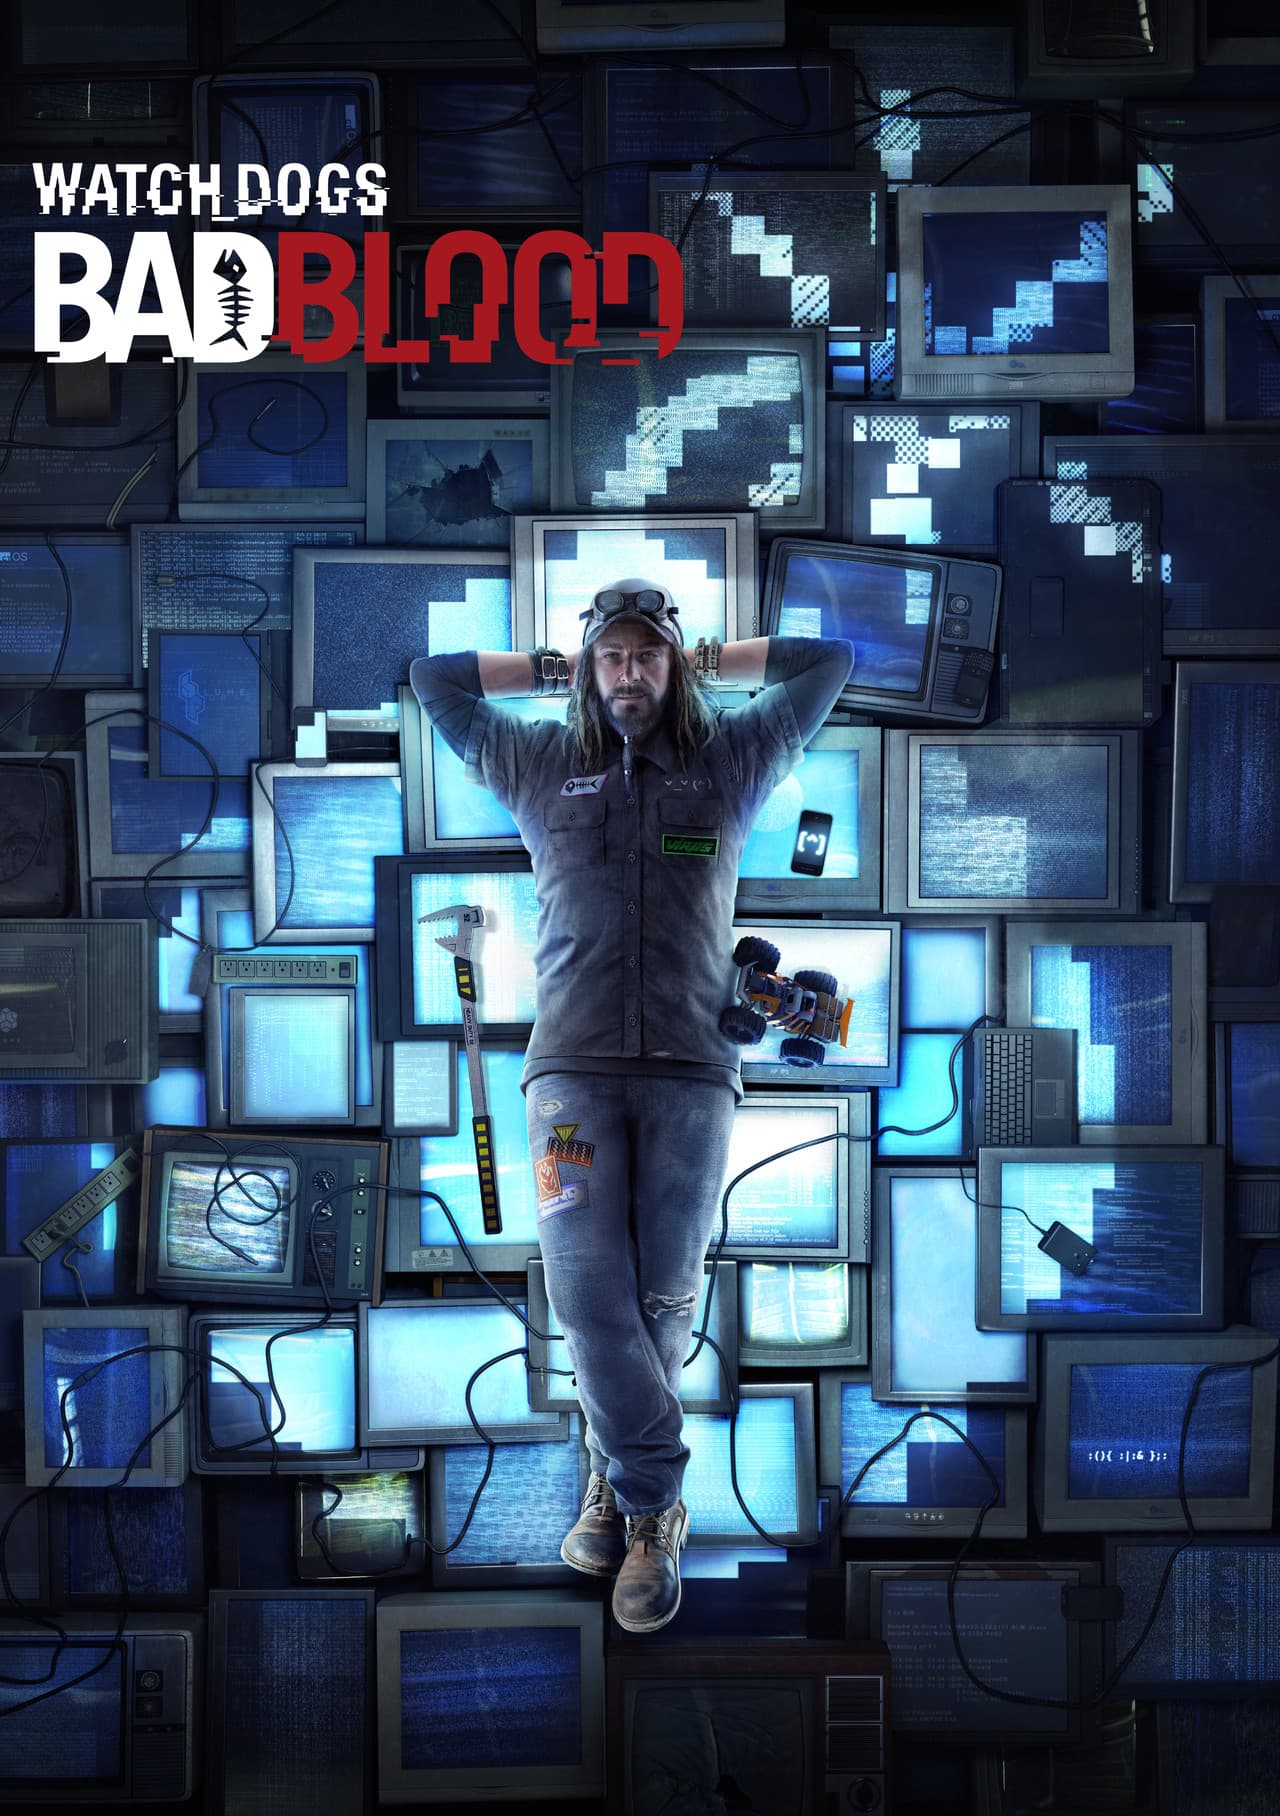 Jaquette Watch Dogs: Bad Blood